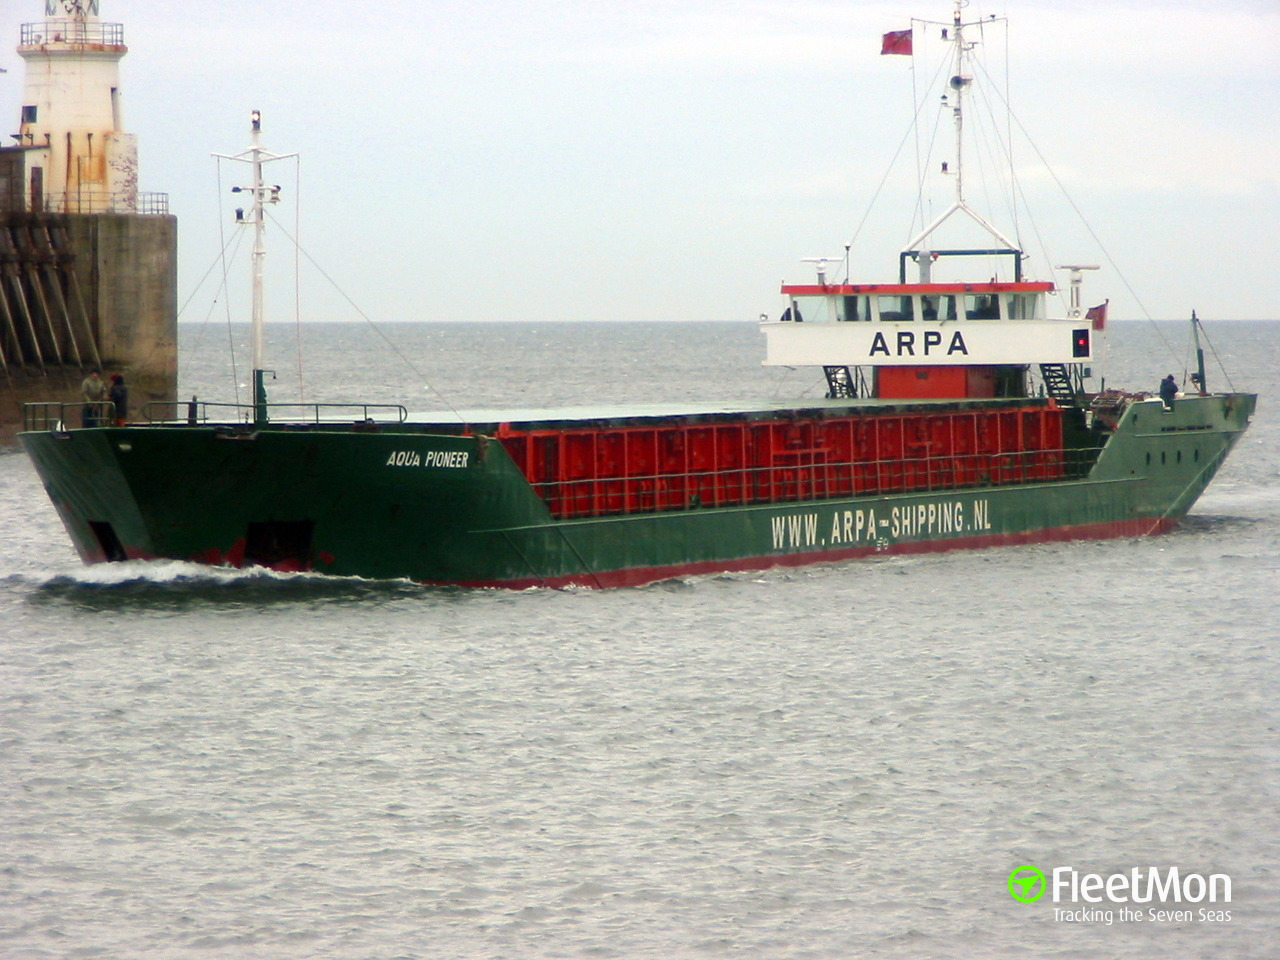 Turkish freighter FOM illegal activities investigation, Ukraine